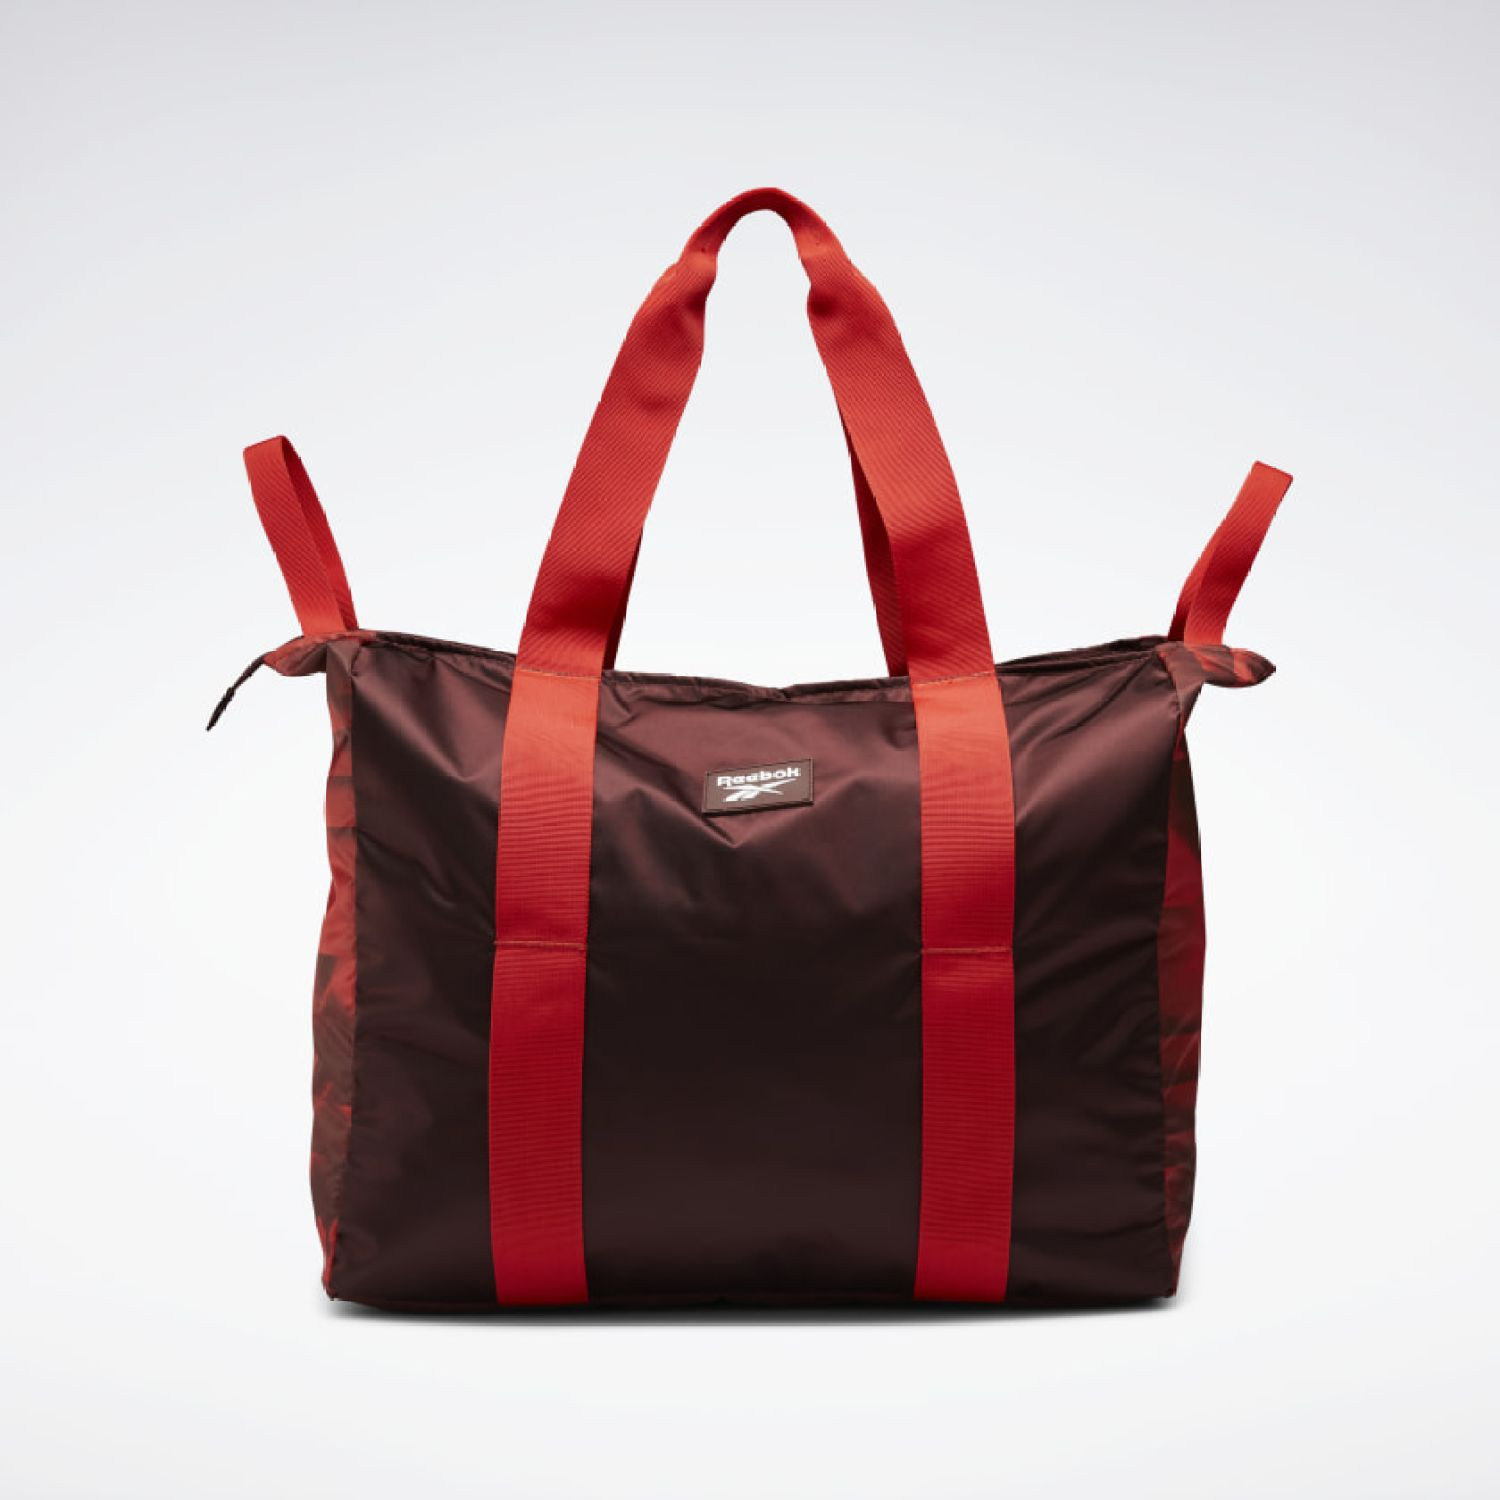 Reebok W Graphic Tech Style Bag BURGUNDY/ROJO Duffels deportivos